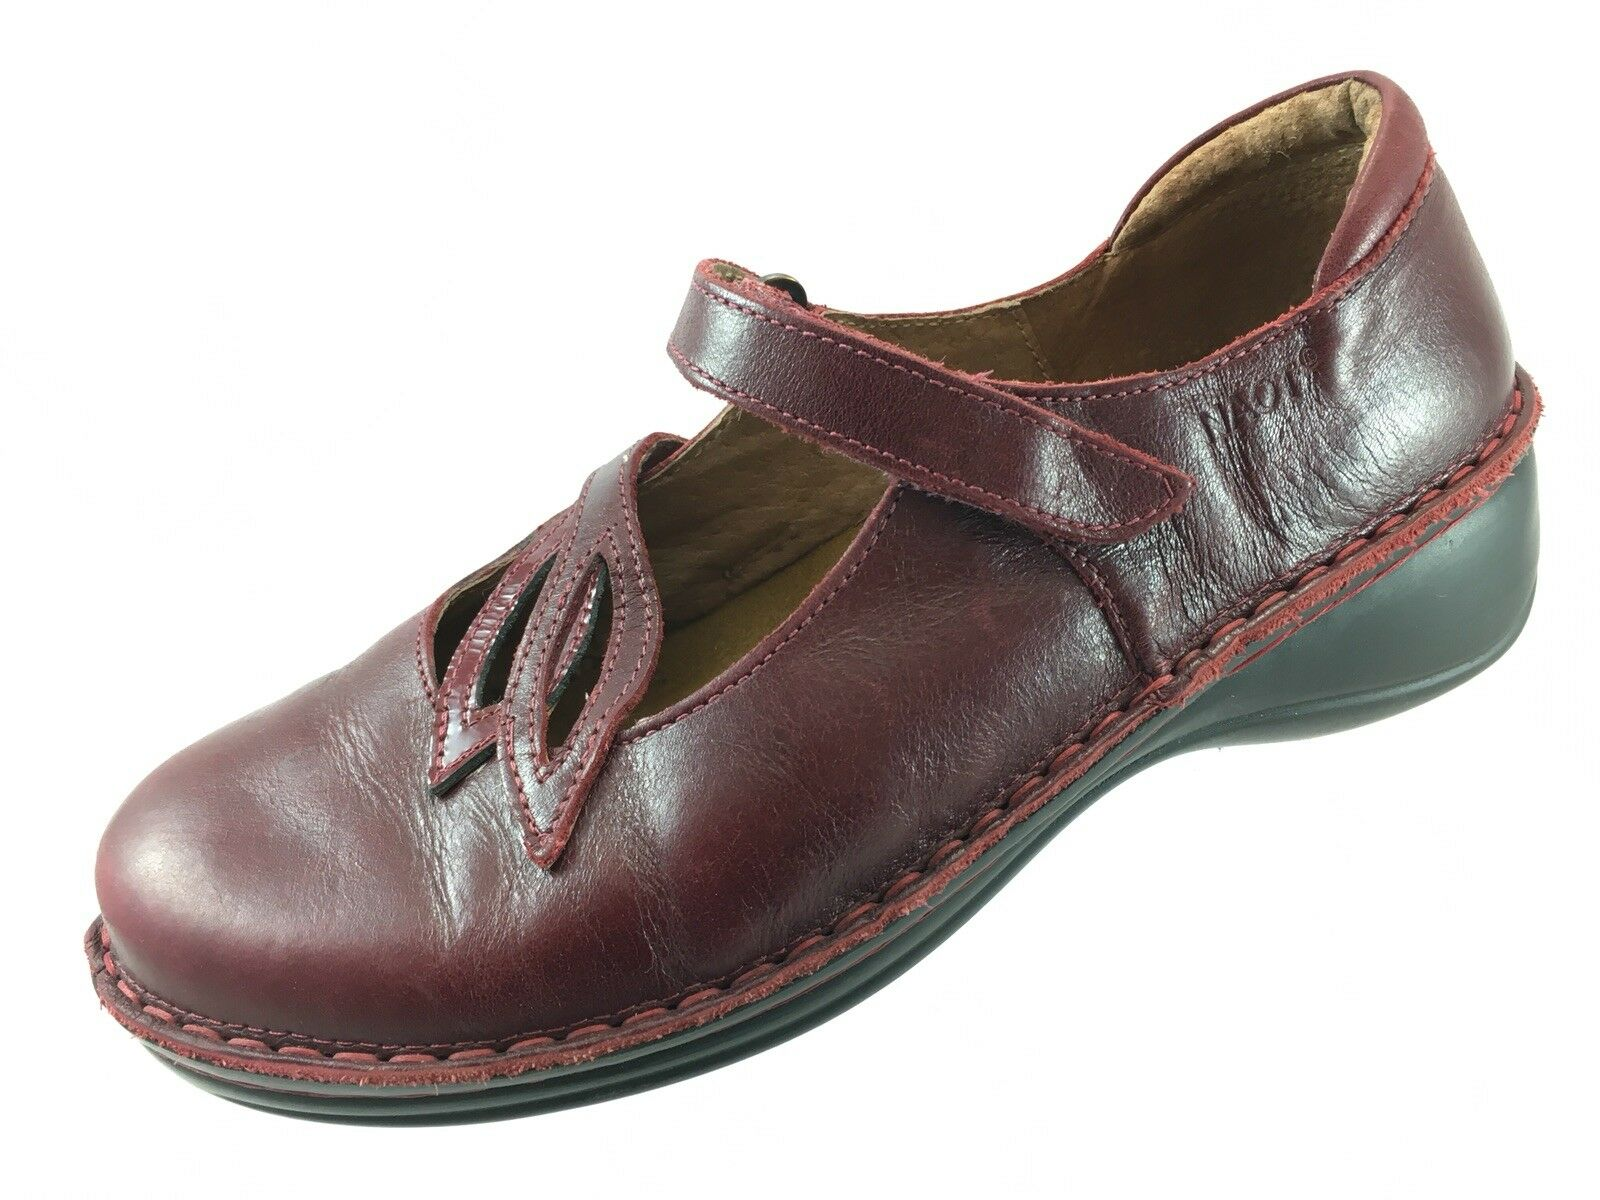 SH30 NAOT US 8 Dark Red Leather Mary Jane Comfort Flat shoes Leaf Israel